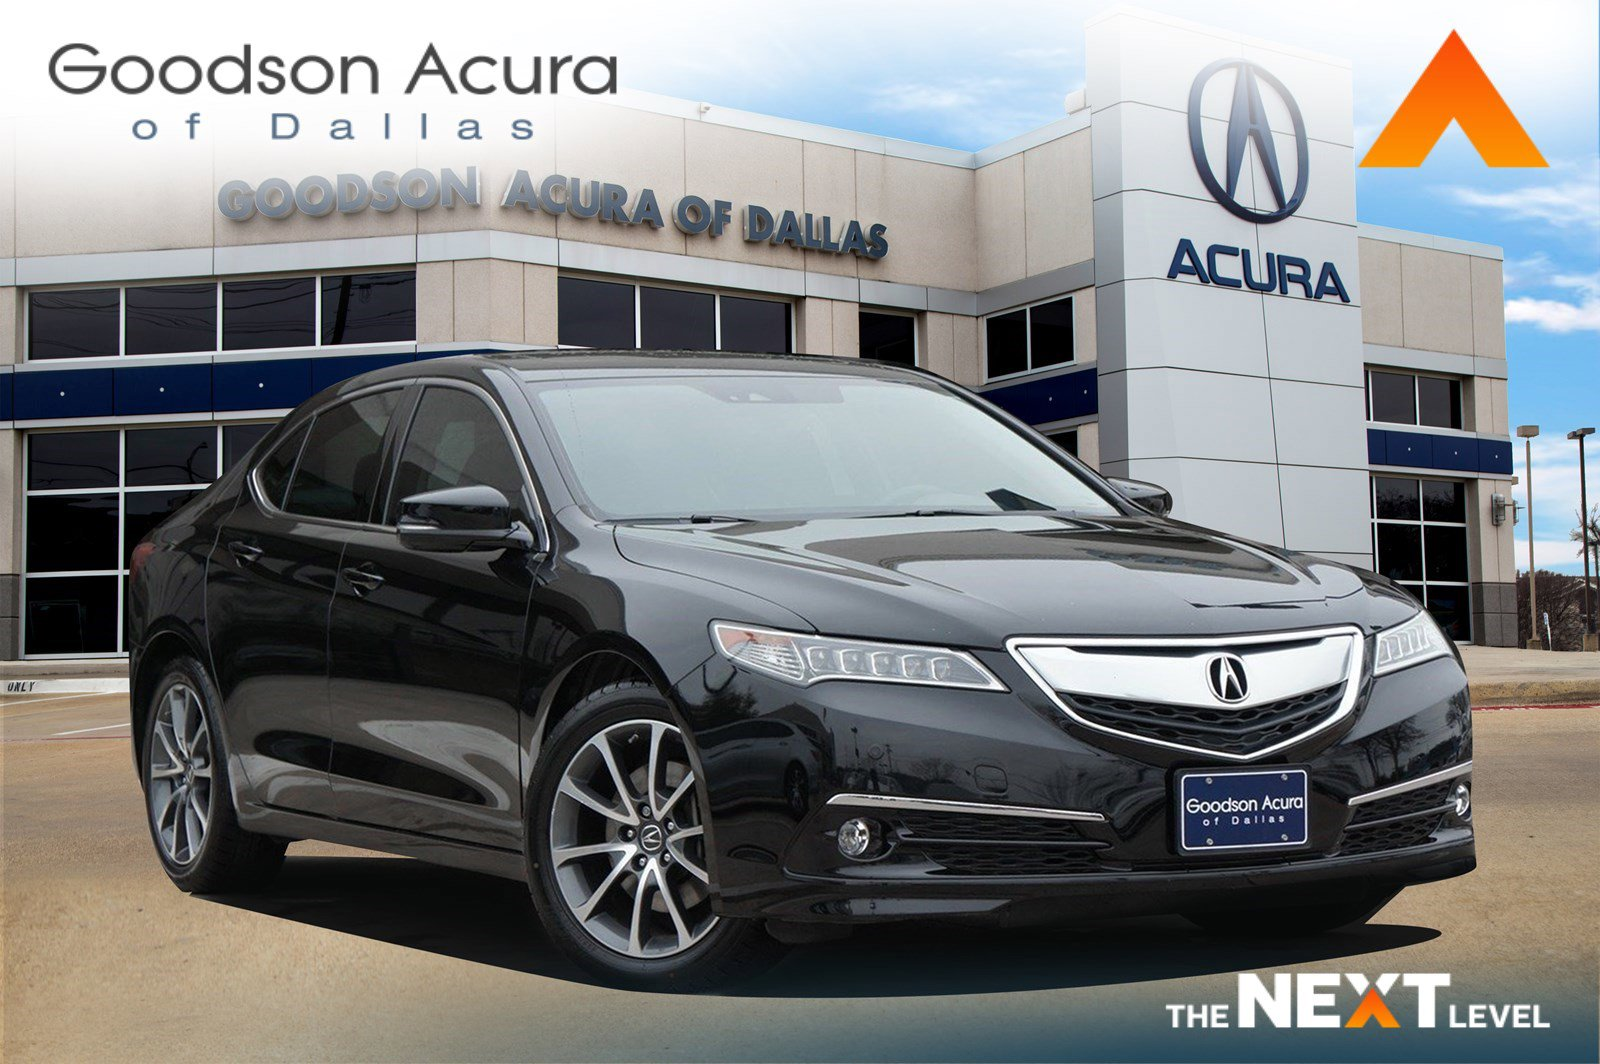 2015 Acura TLX V6 w/ Advance Package image